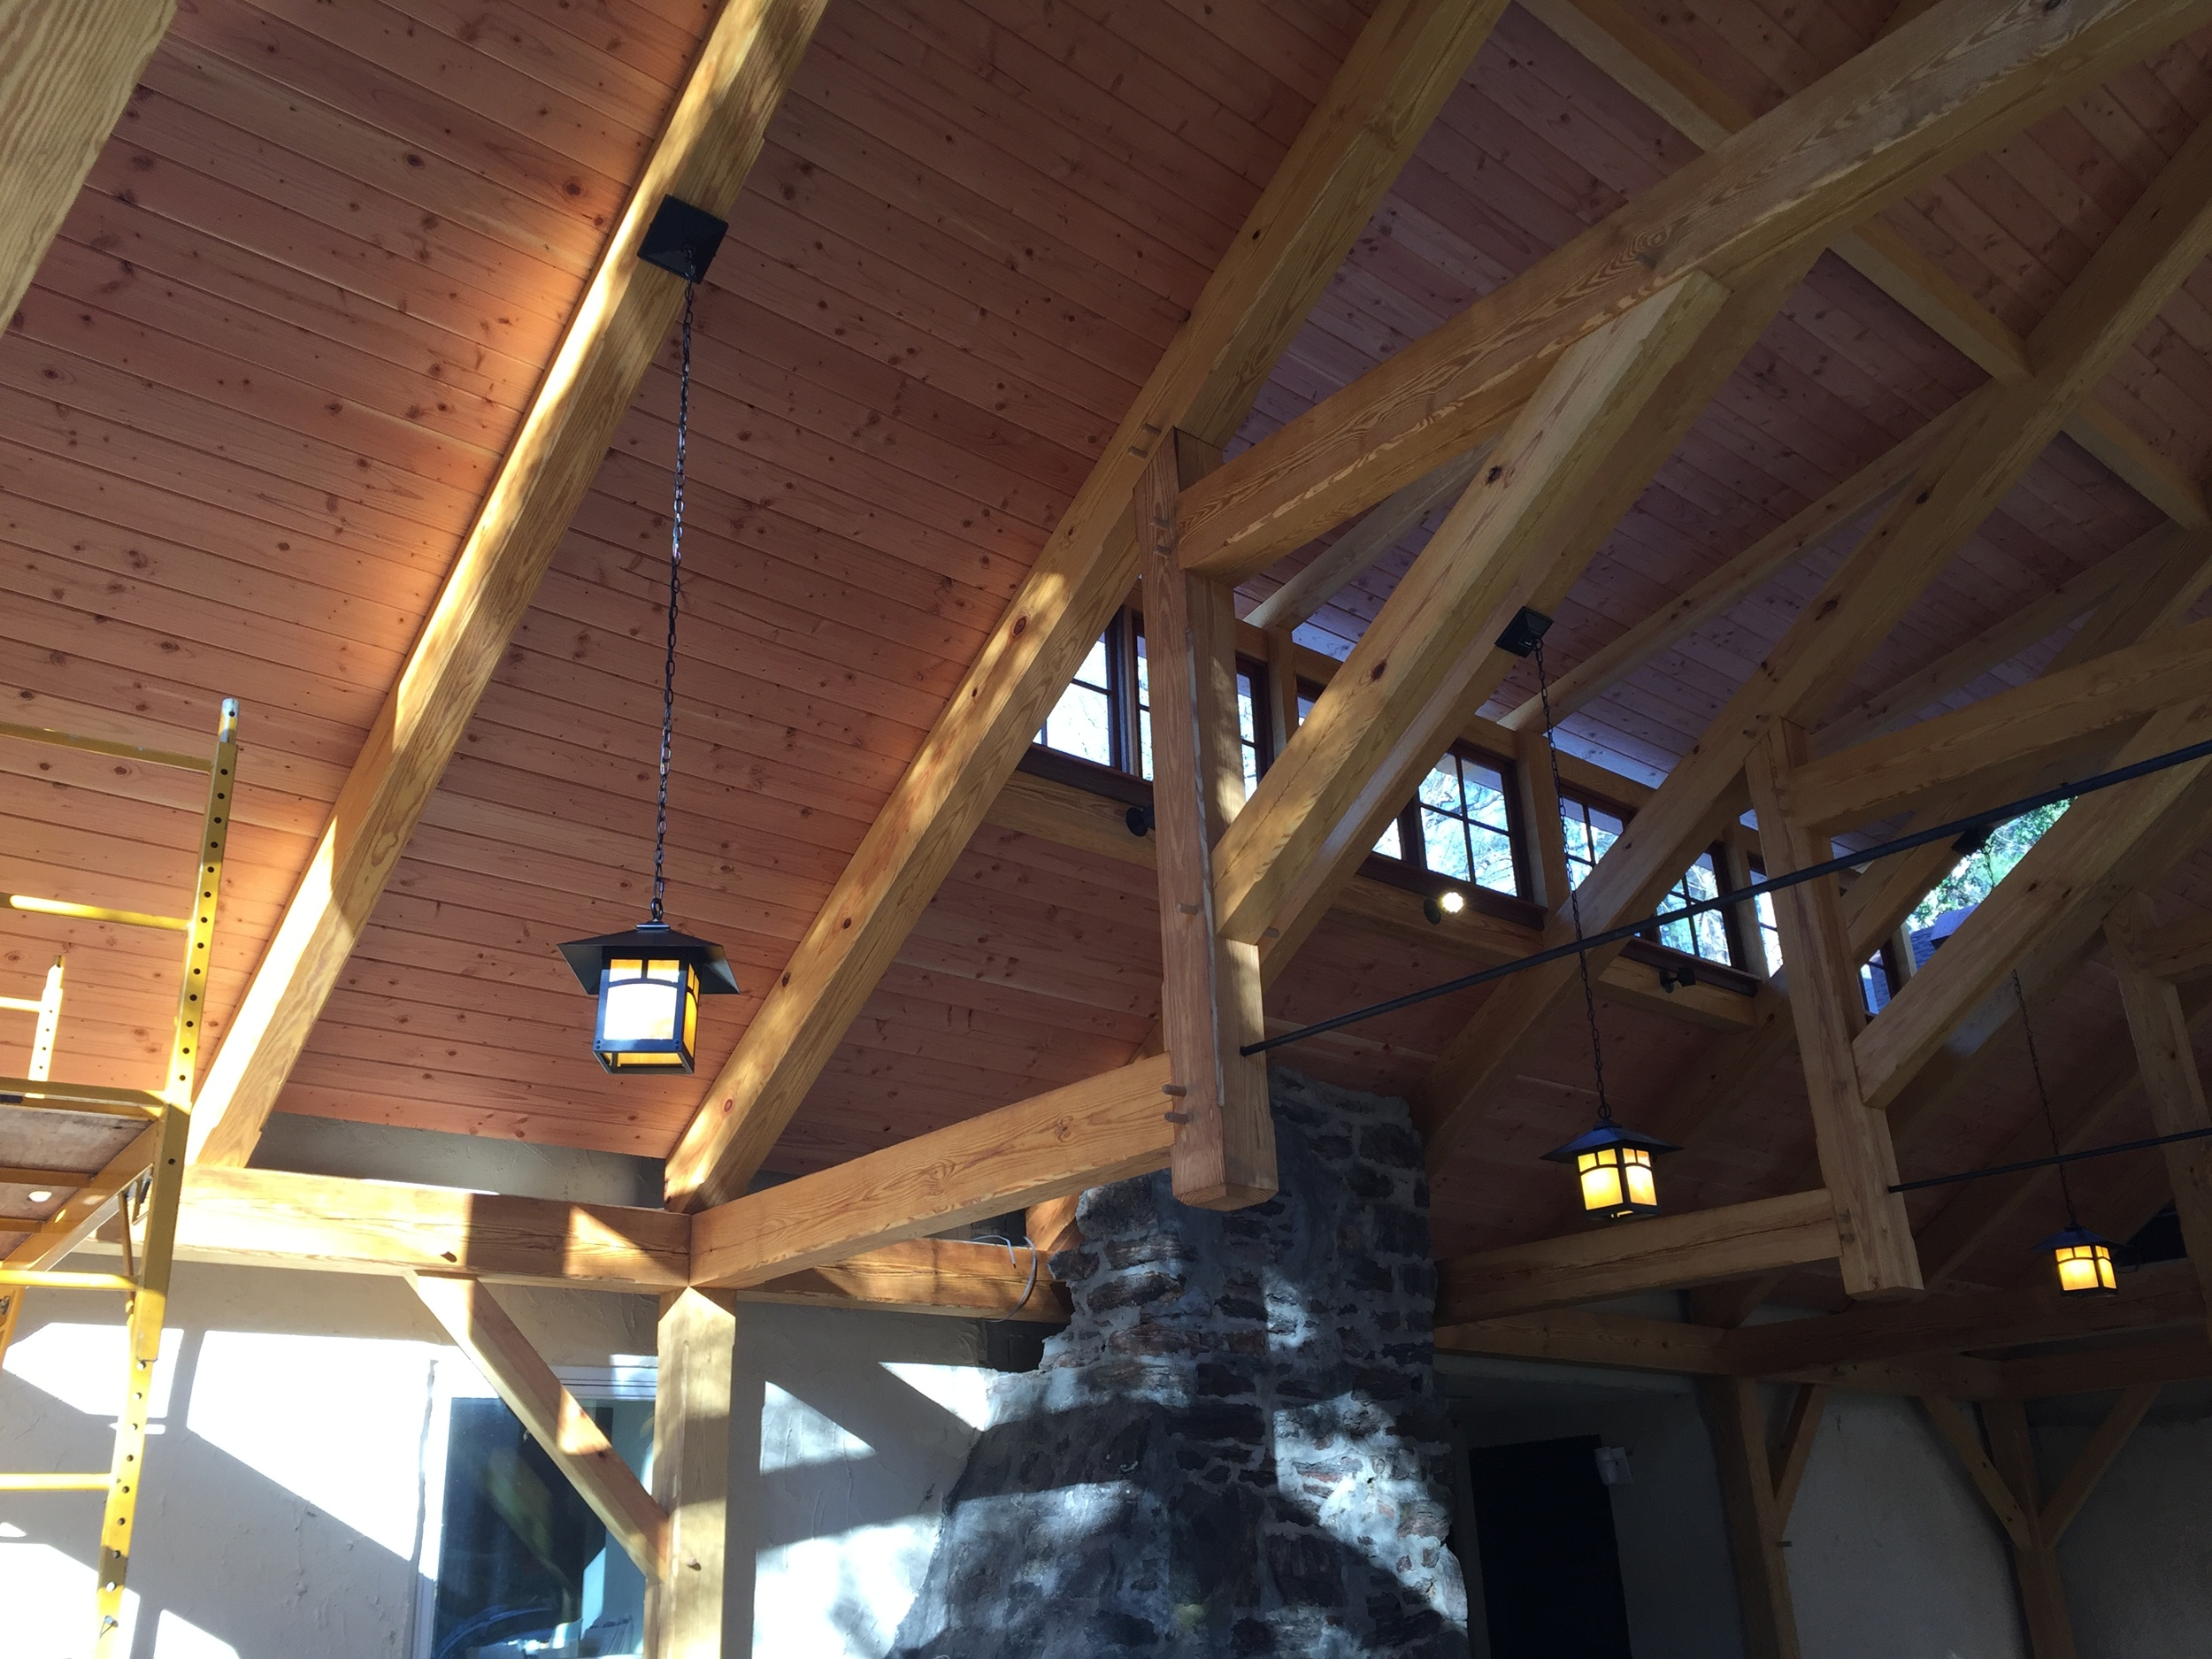 Overhead lighting in new patio pavilion